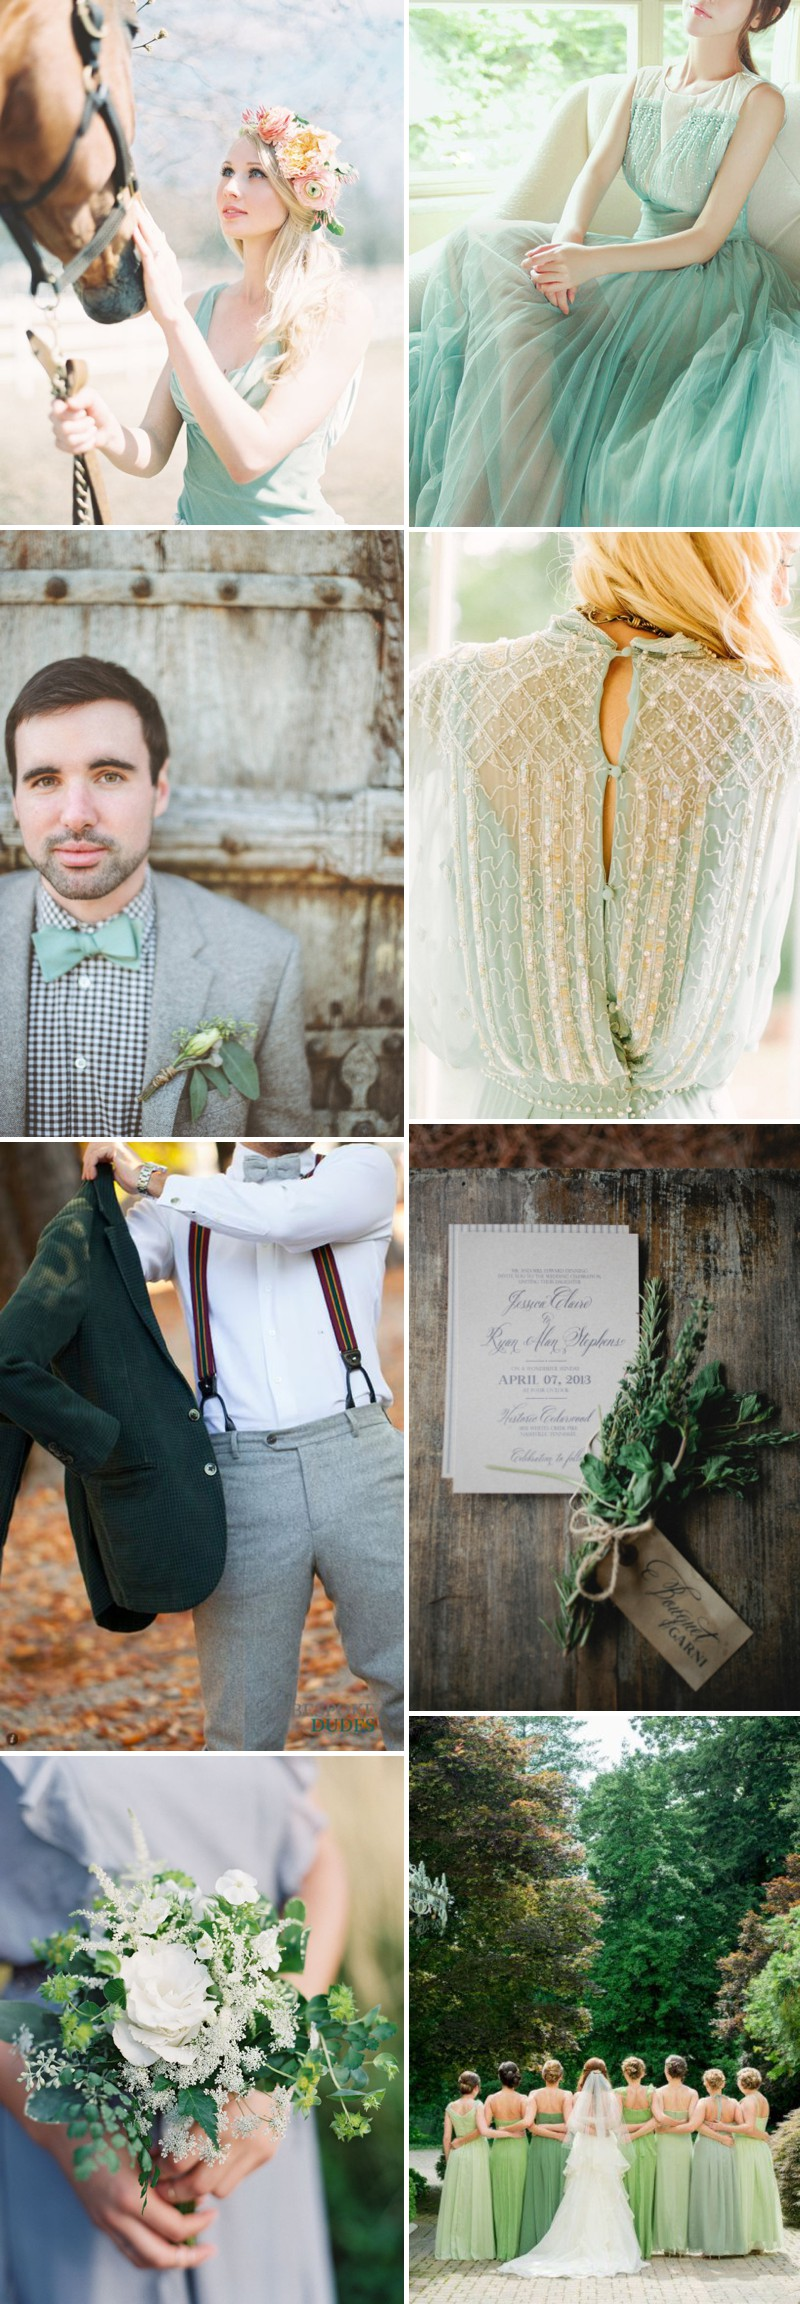 How To Integrate A Green Colour Scheme Into Your Wedding Decor And Theme. 0001 The Luck Of The Irish.